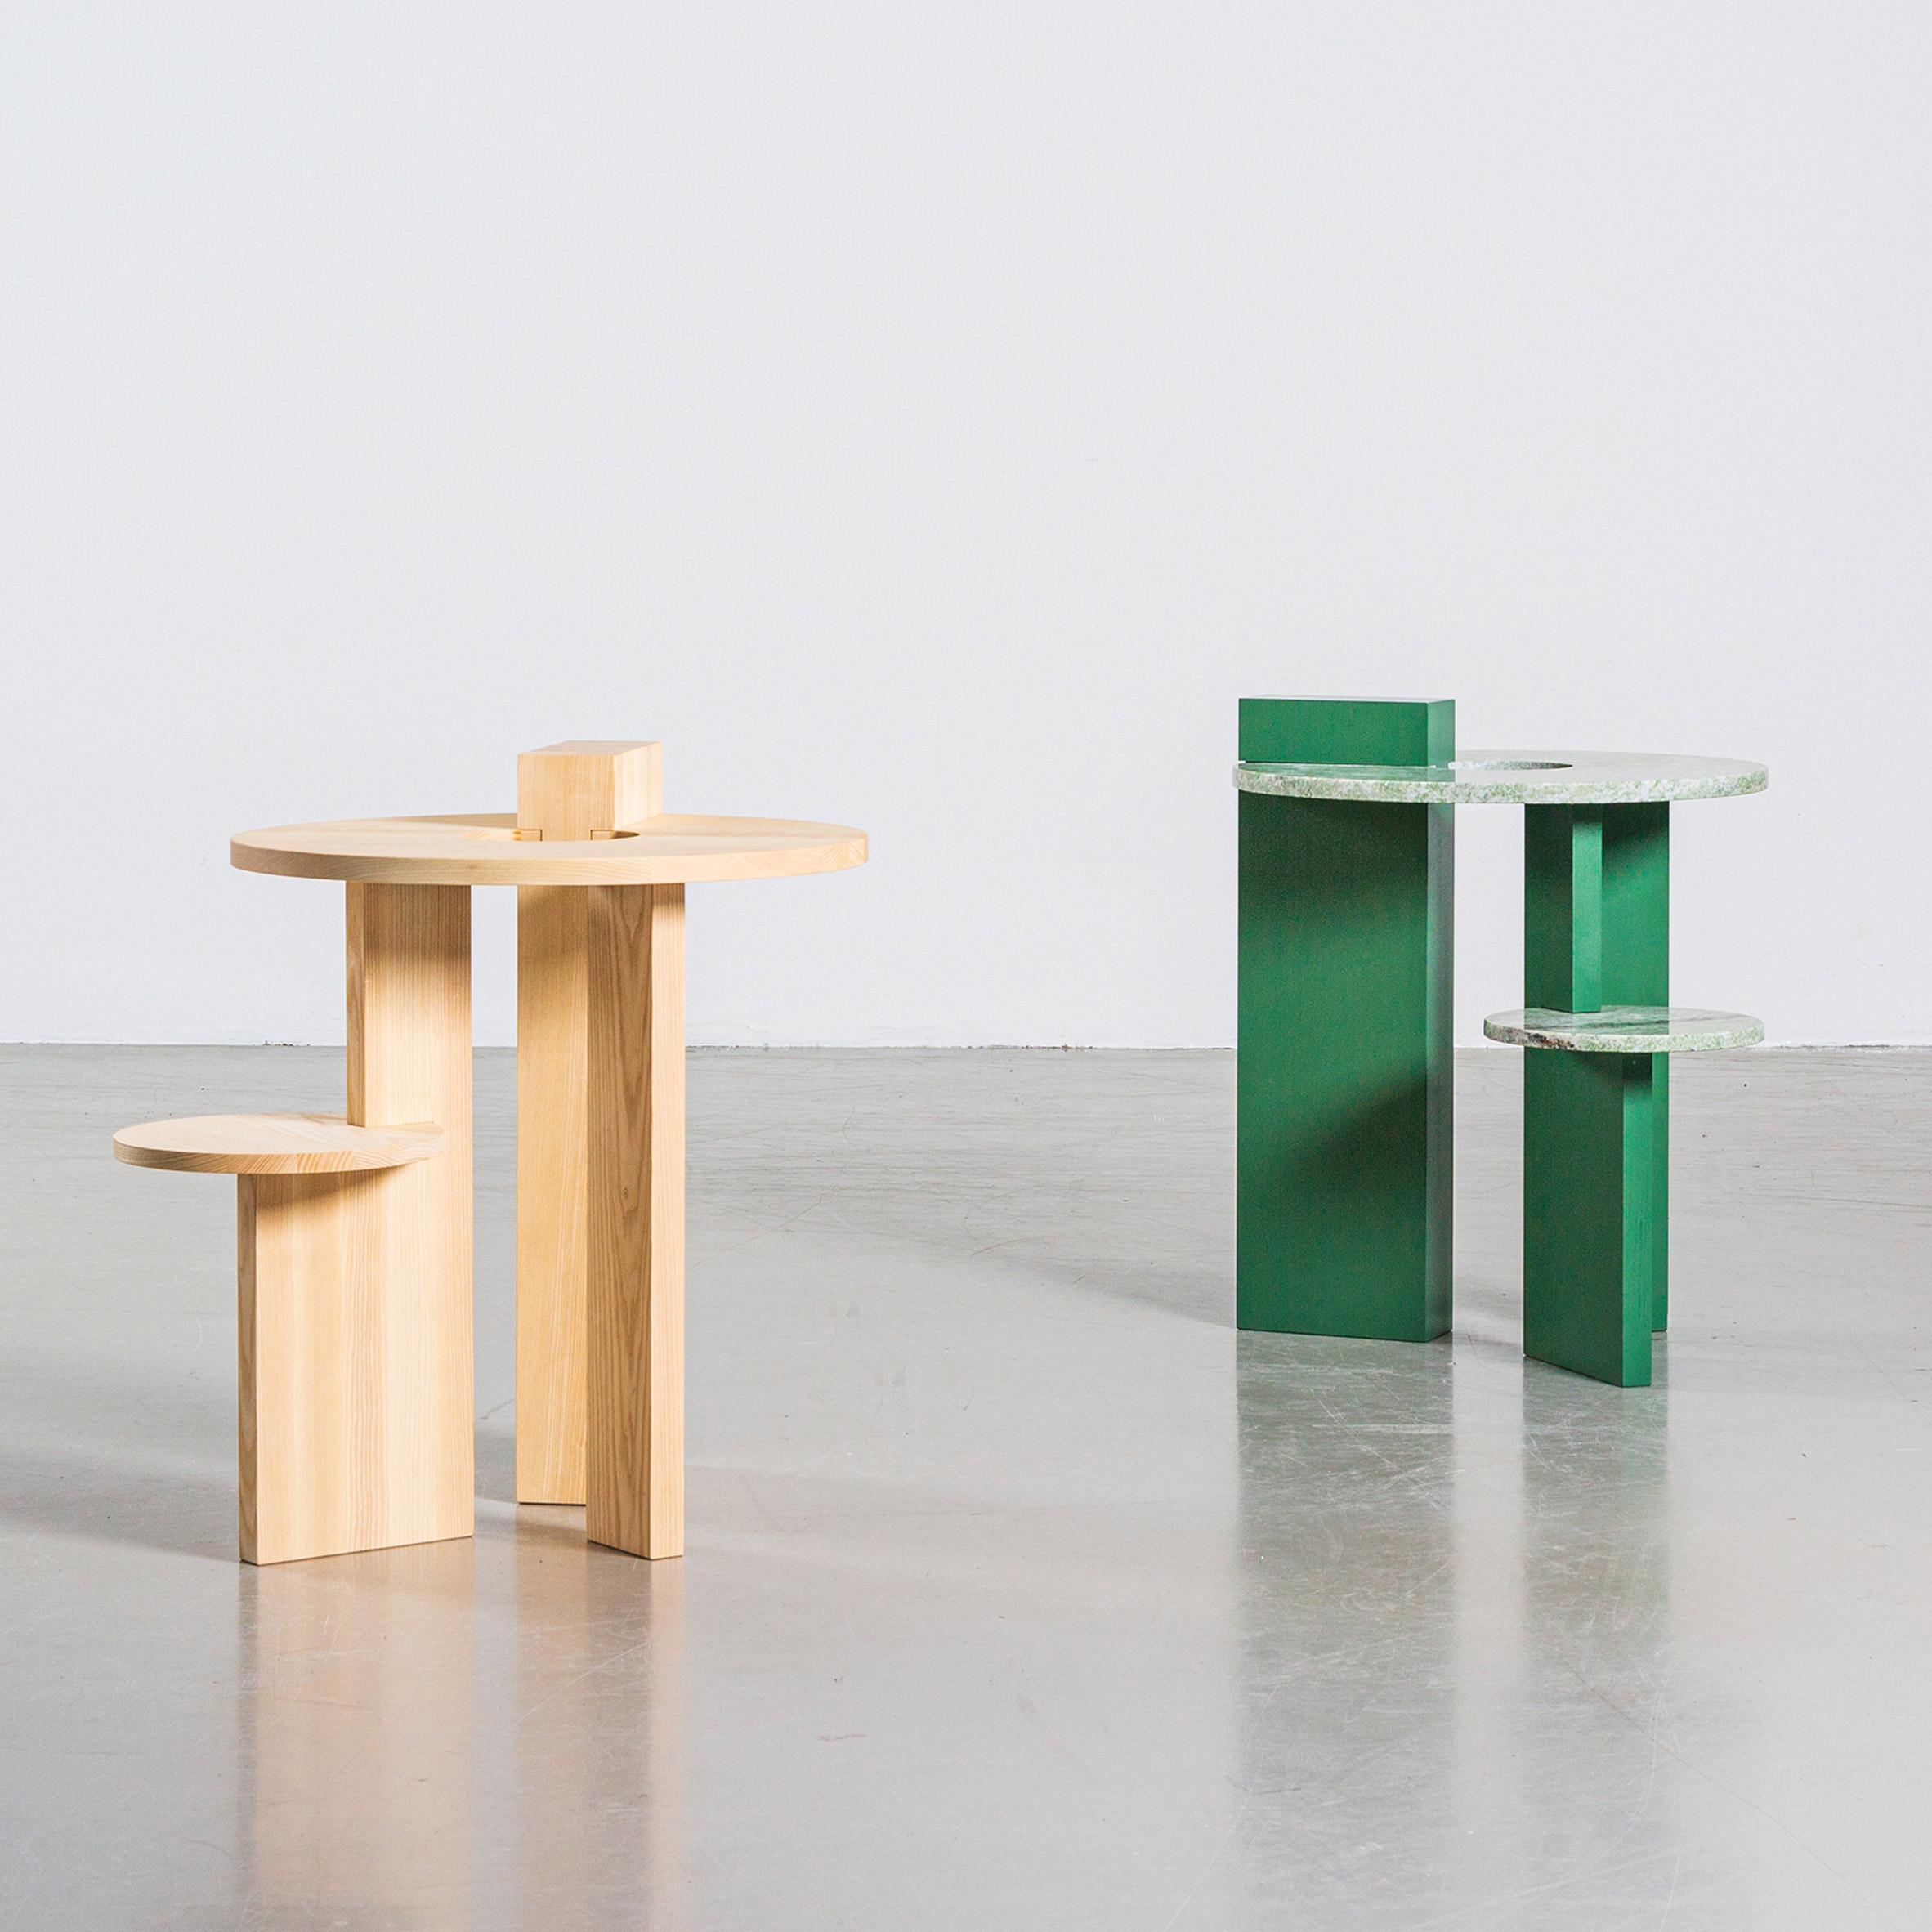 Greenhouse student projects: Etage by Elsa Frisén and Matilda Olsson Borg